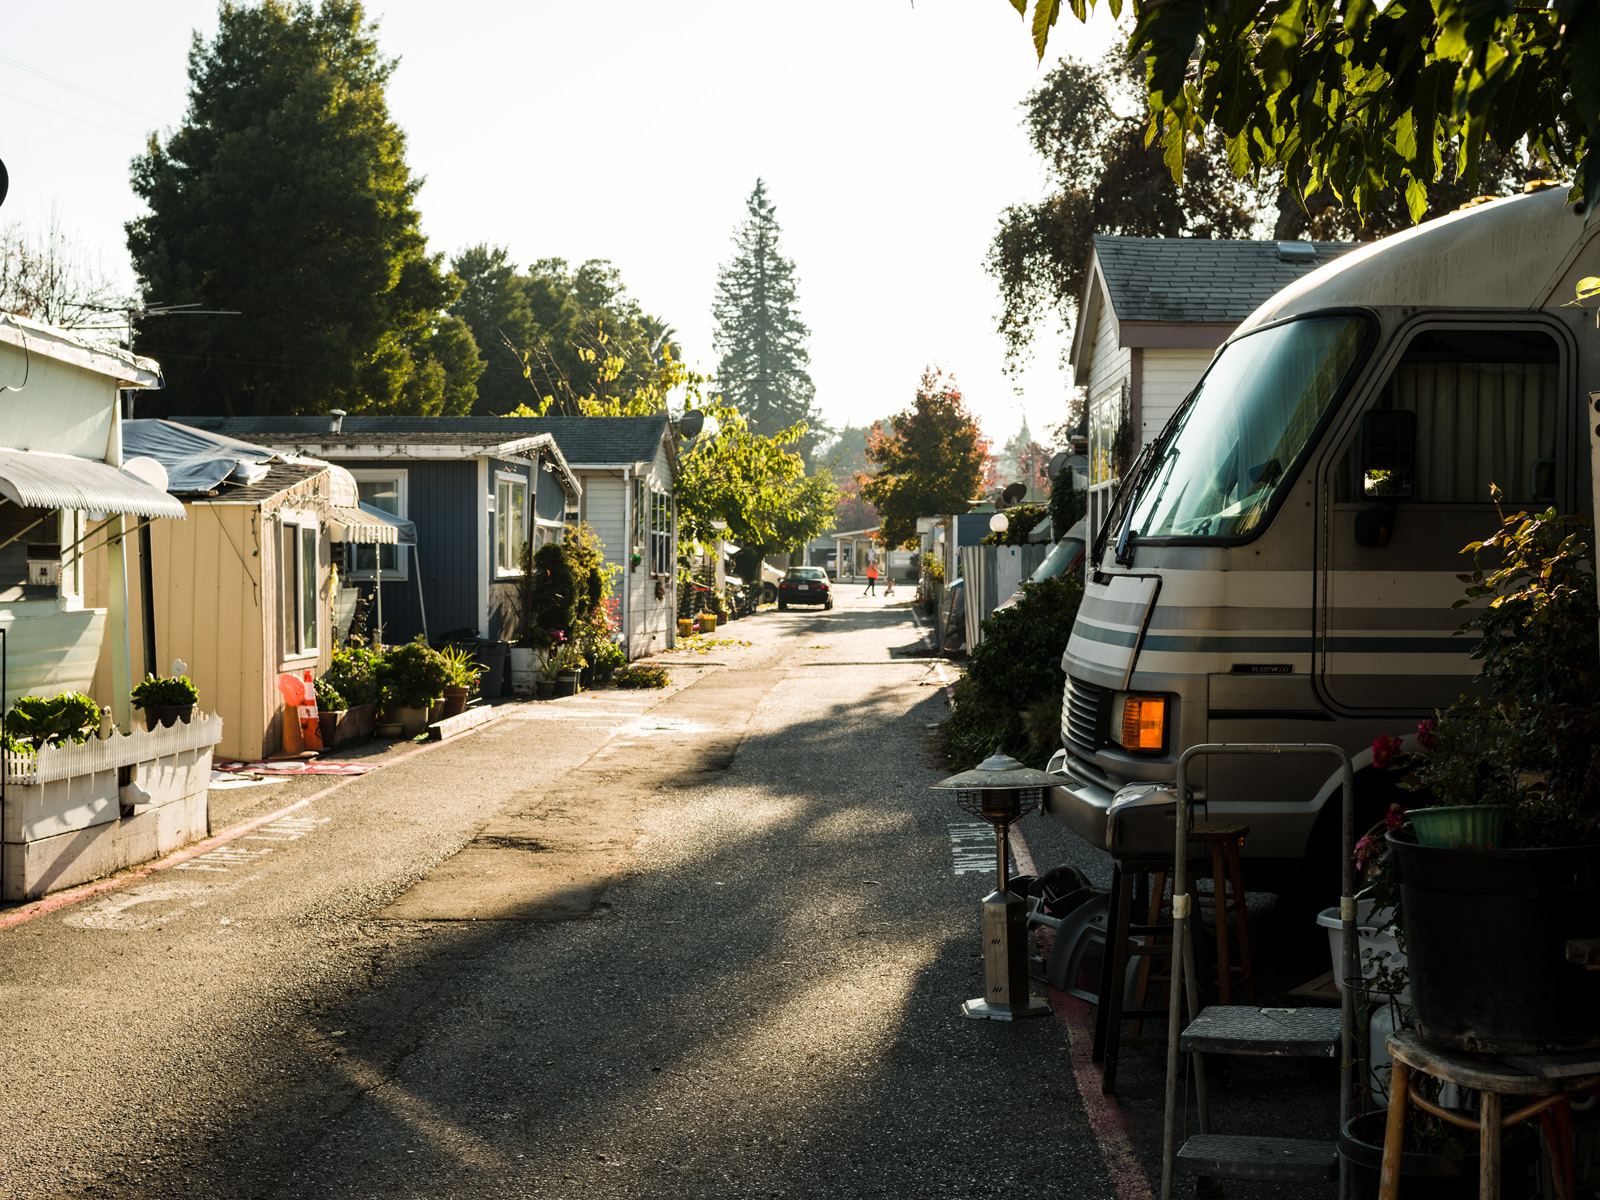 Trailers in the Buena Vista Mobile Home Park. The park offers one of the only affordable housing options in Palo Alto, where the median home price is $3.2 million